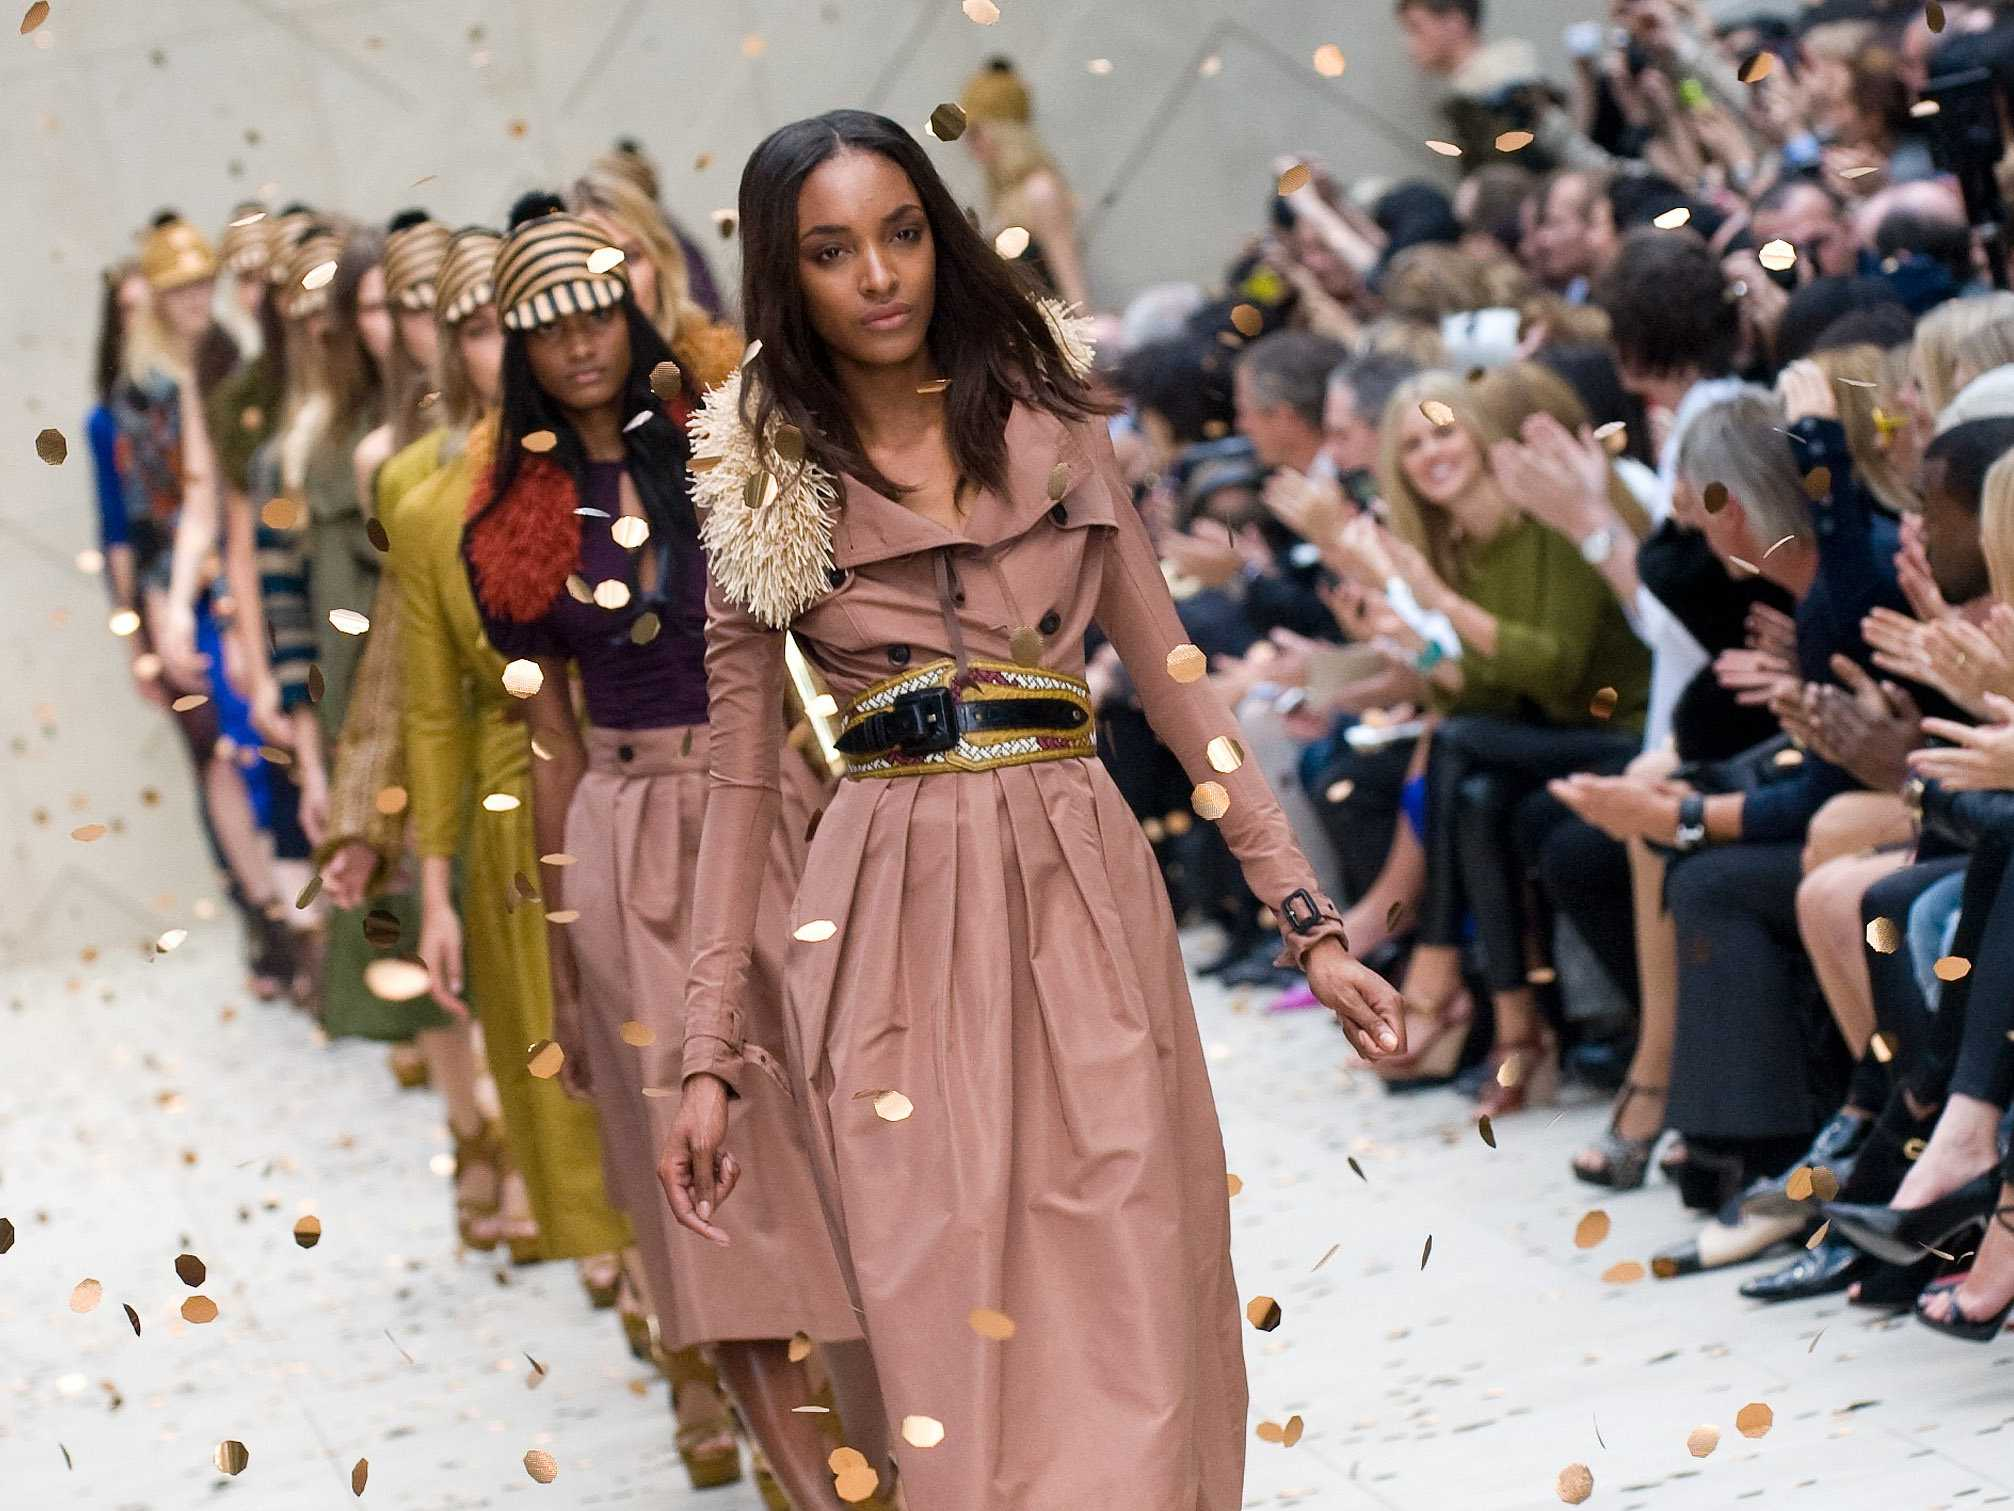 Check Out Some Of The Fashion Trends That You Can Rip Off The NYFW Runway